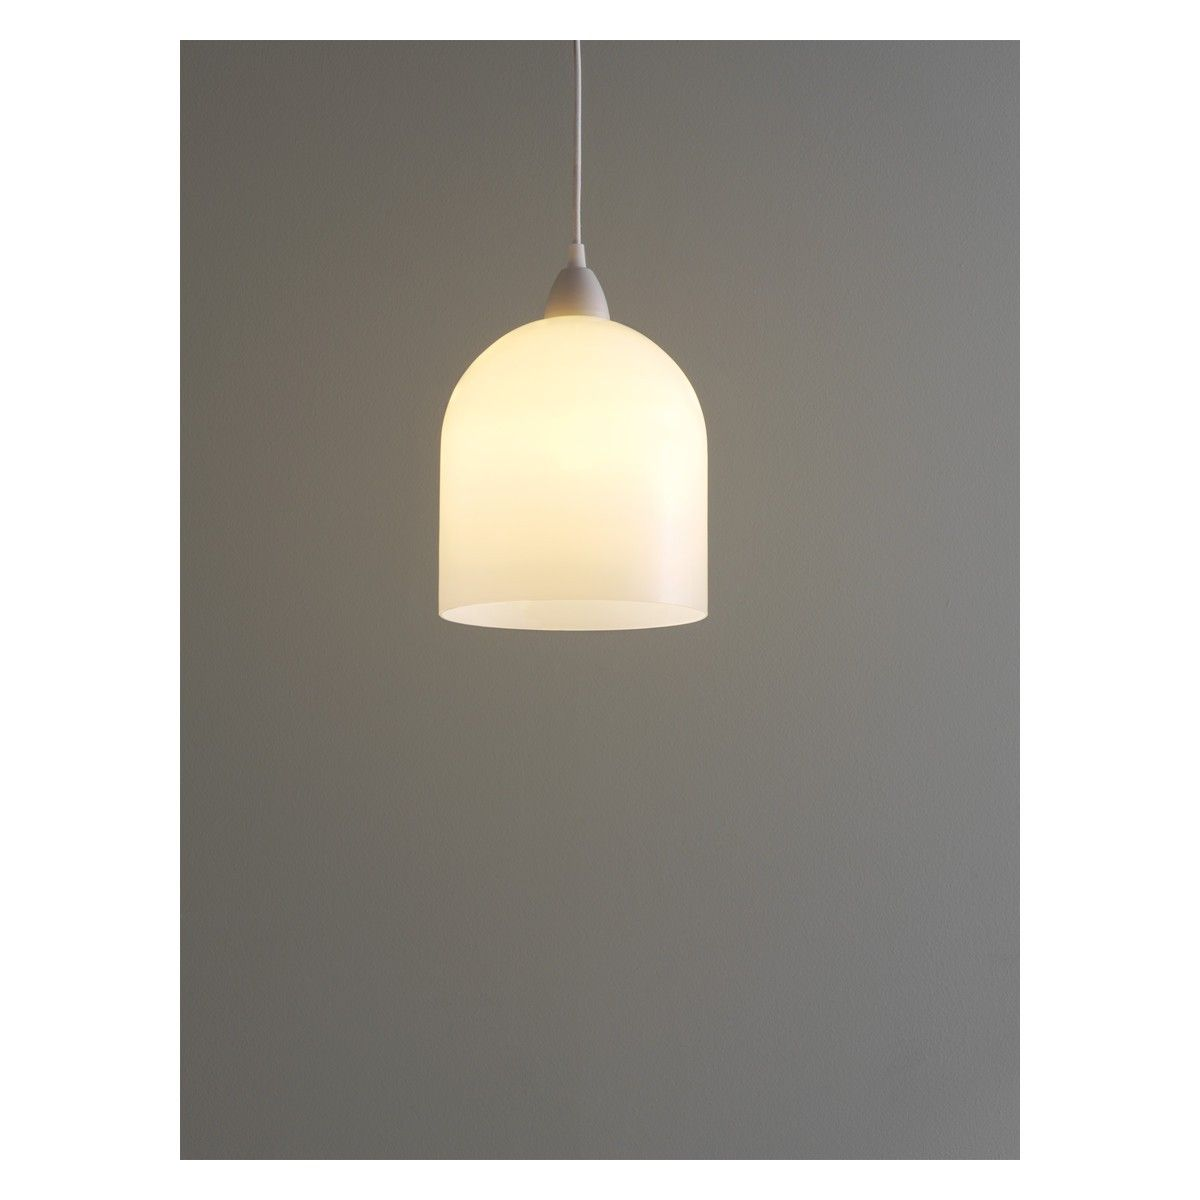 Liv white glass ceiling light shade buy now at habitat uk liv white glass ceiling light shade buy now at habitat uk aloadofball Choice Image